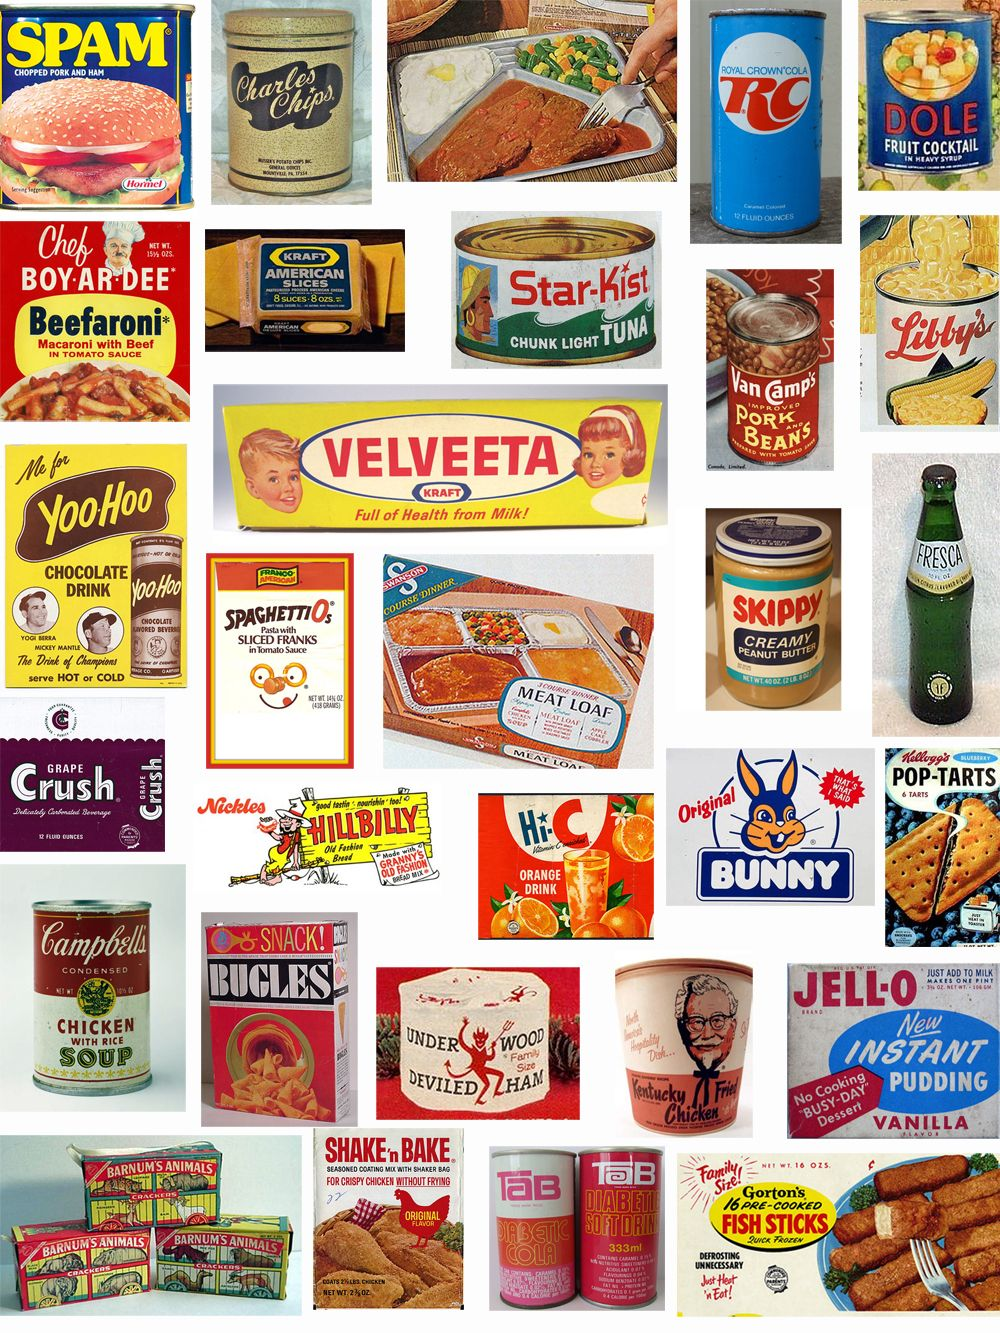 Child of the 60s food and beverage child of the 60s